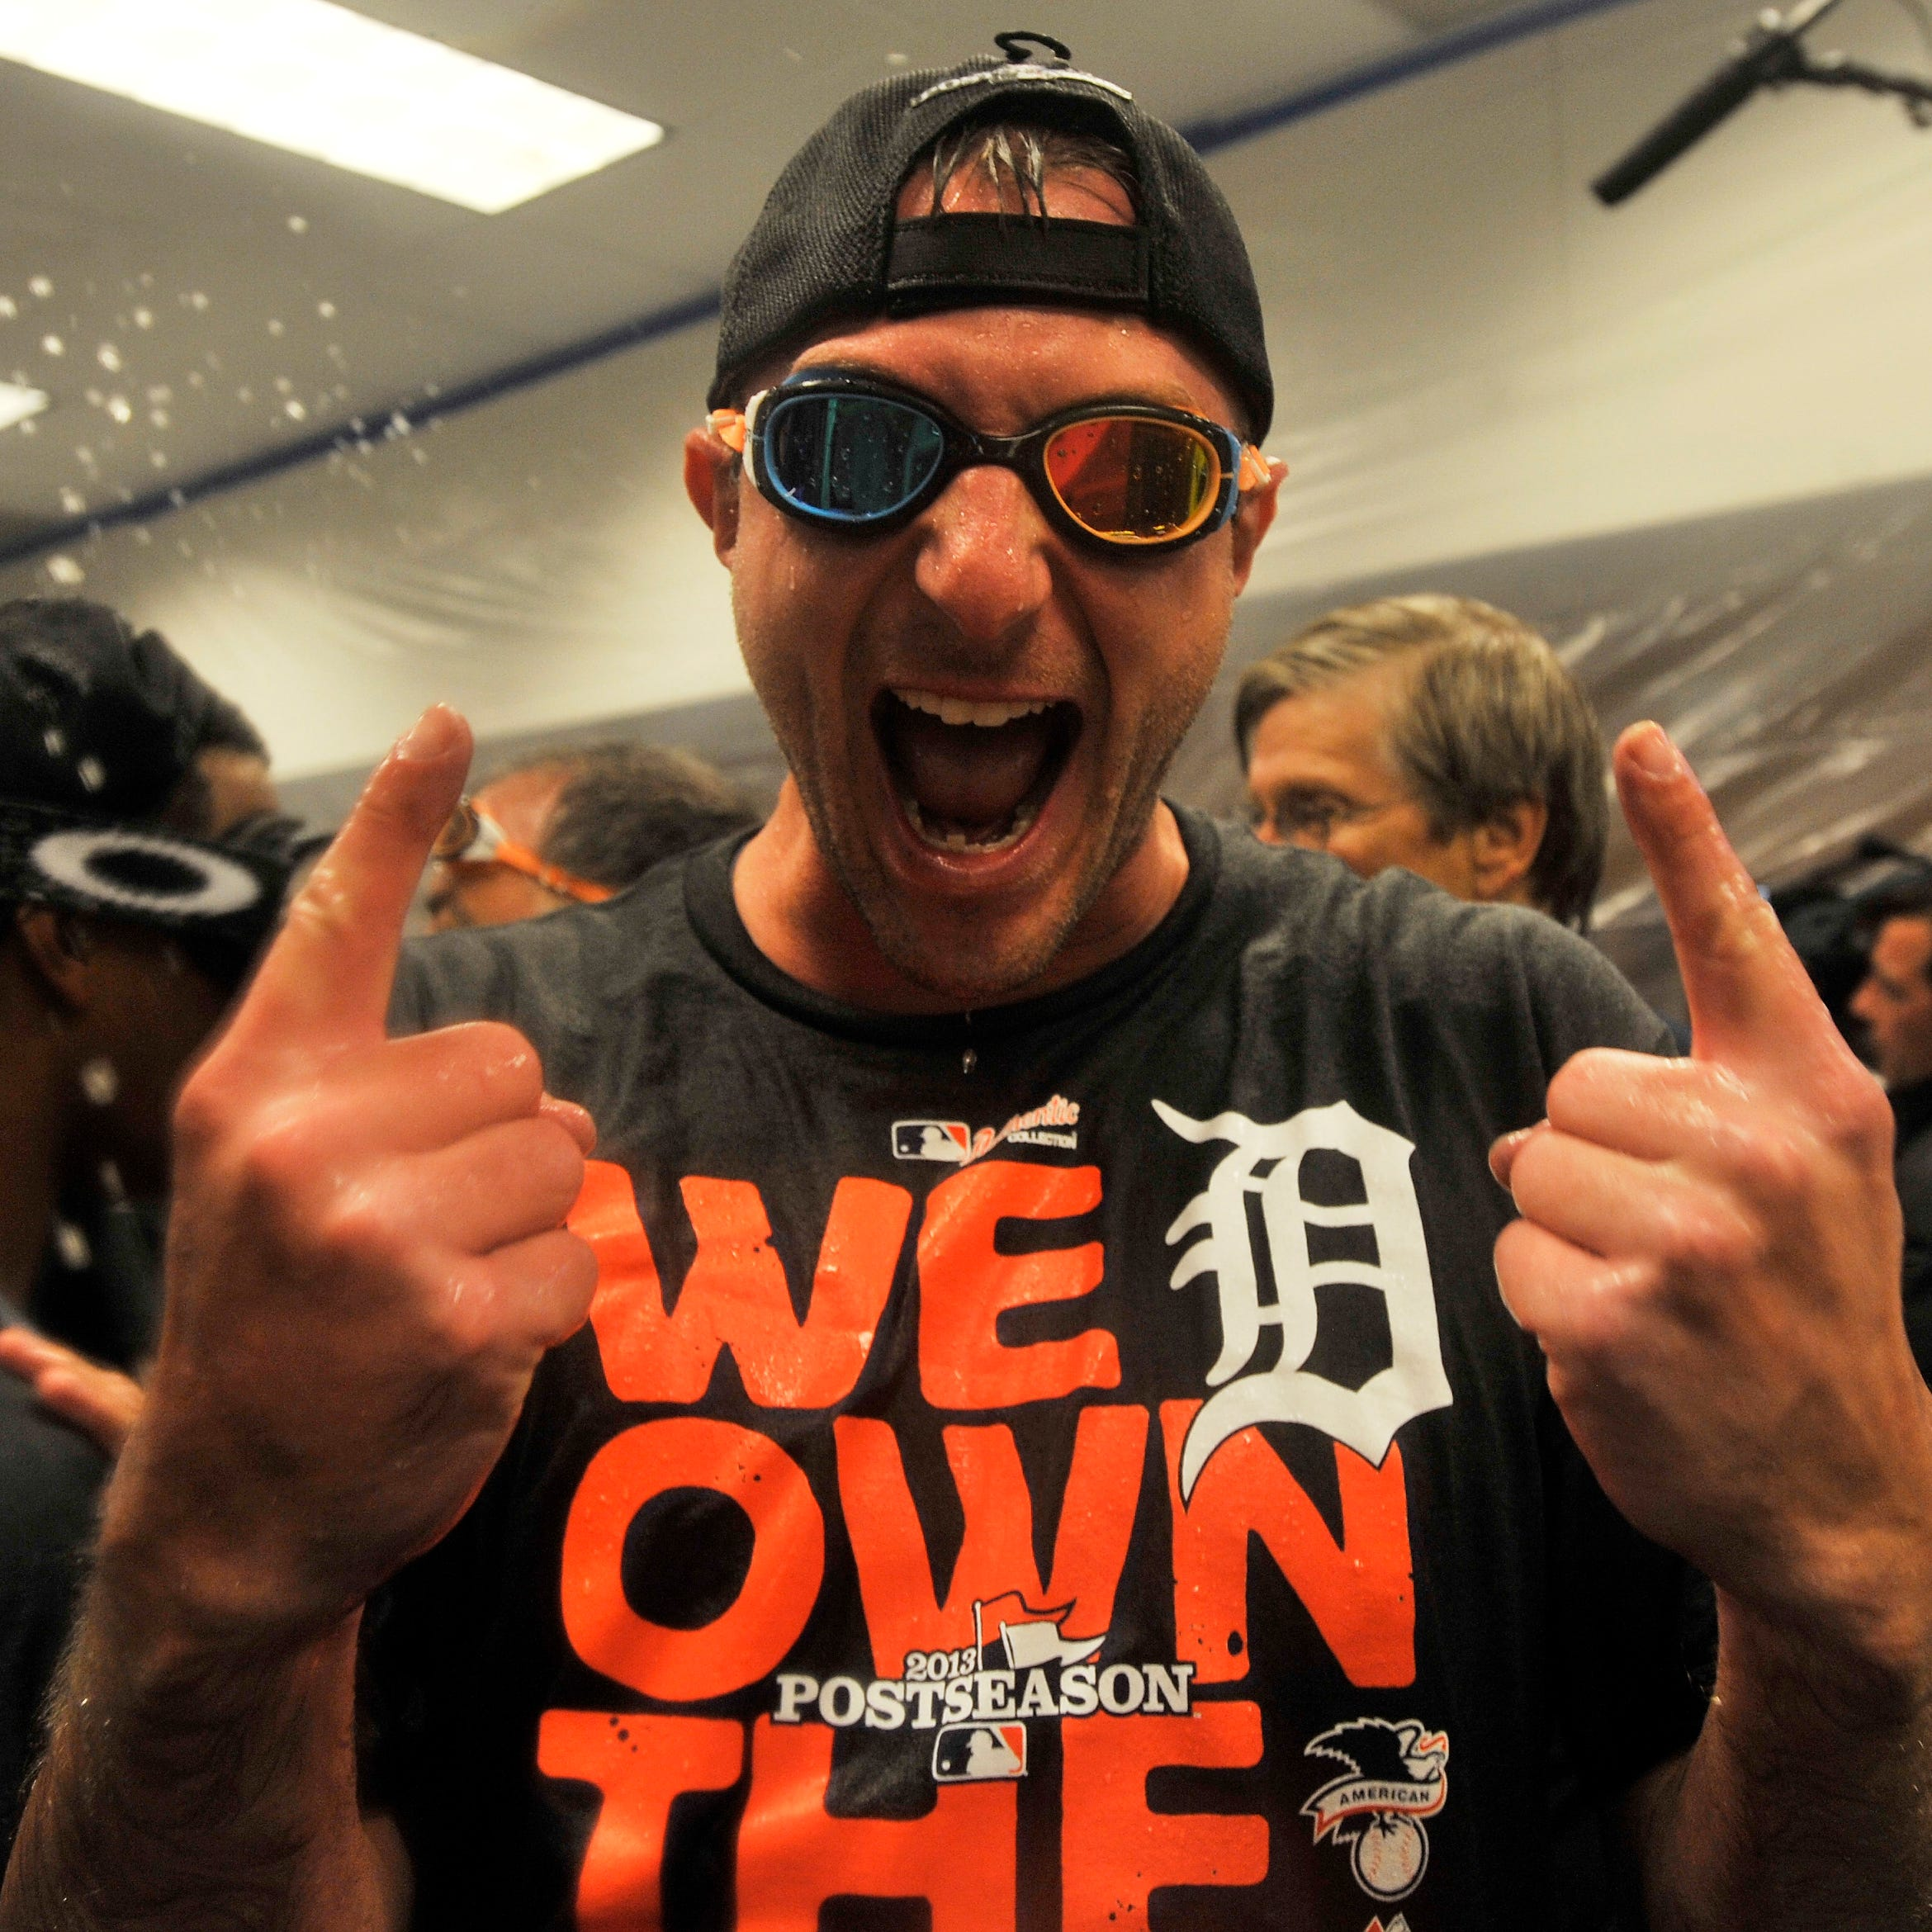 When will the Detroit Tigers contend again? Here's one possible timeline